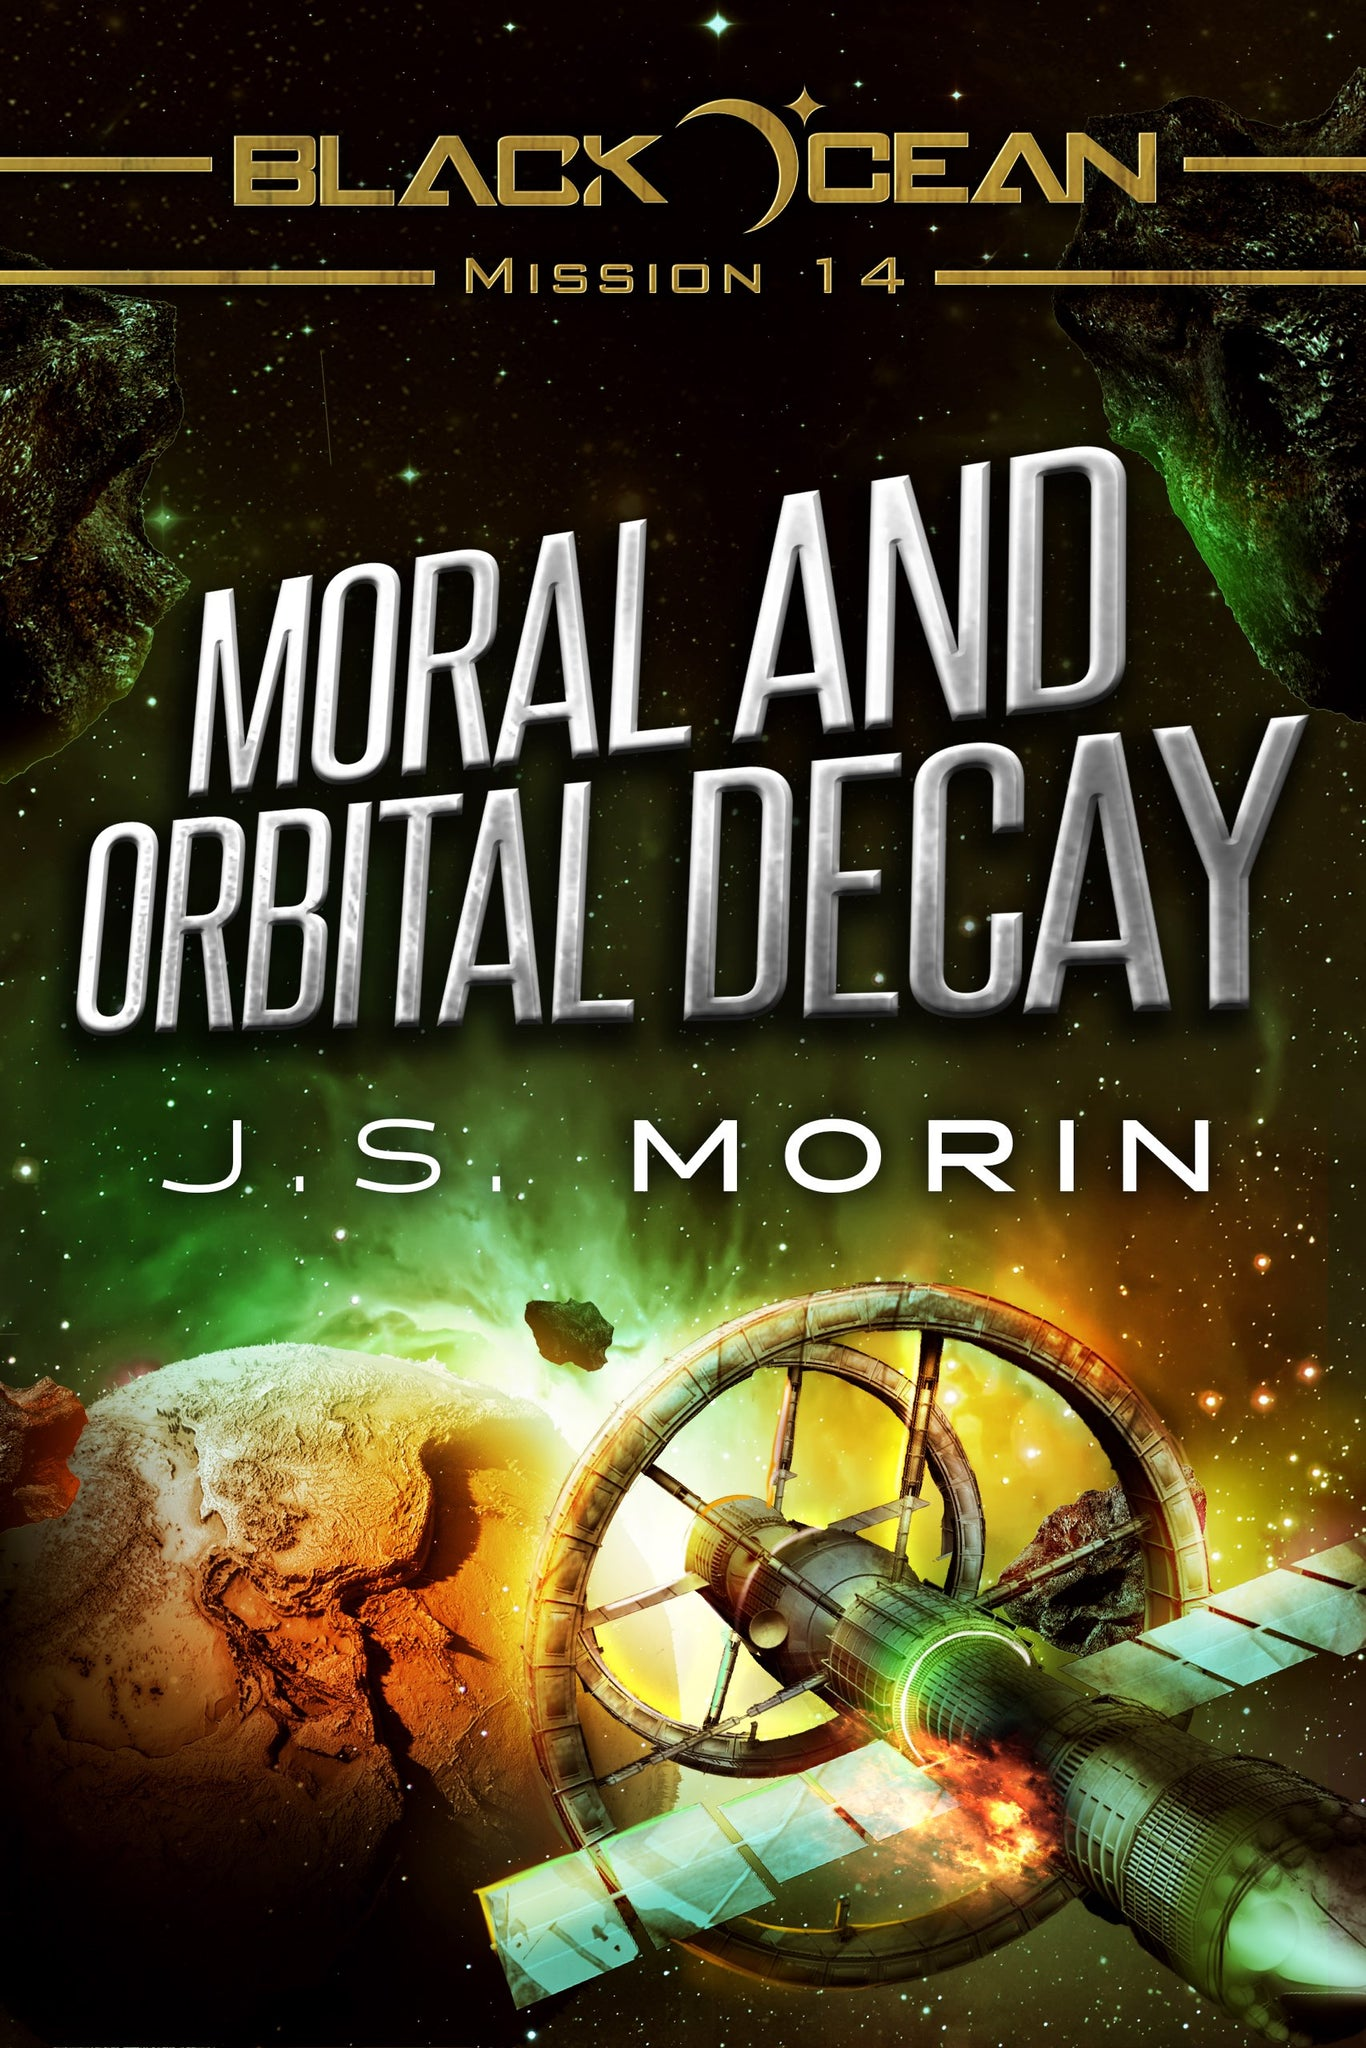 Moral and Orbital Decay, Black Ocean Mission 14